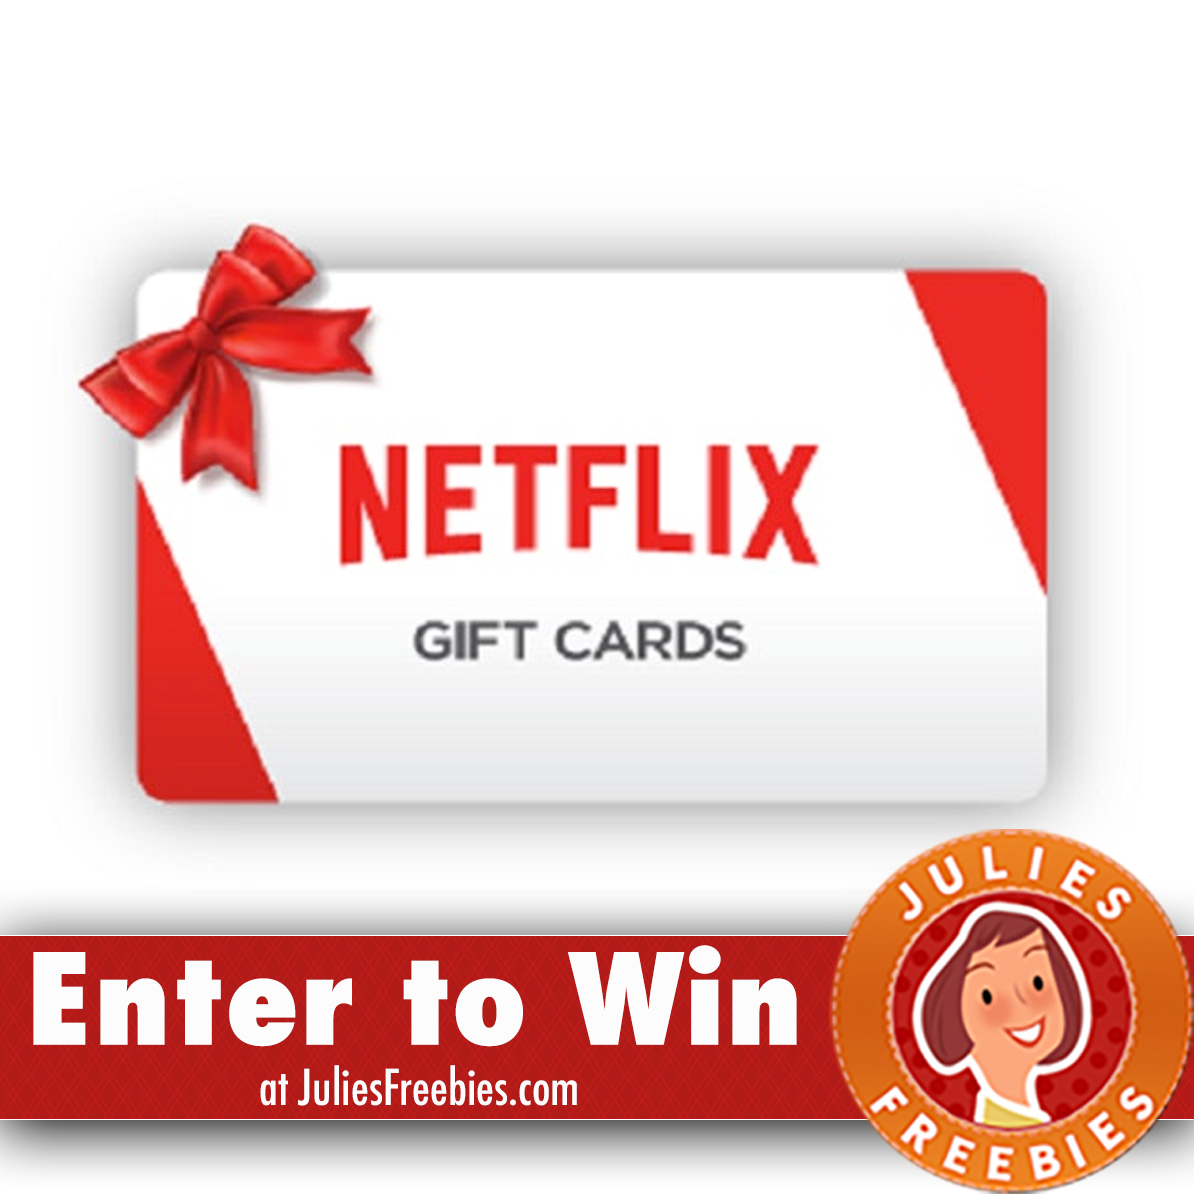 Win a Netflix Gift Card and More - Julie's Freebies